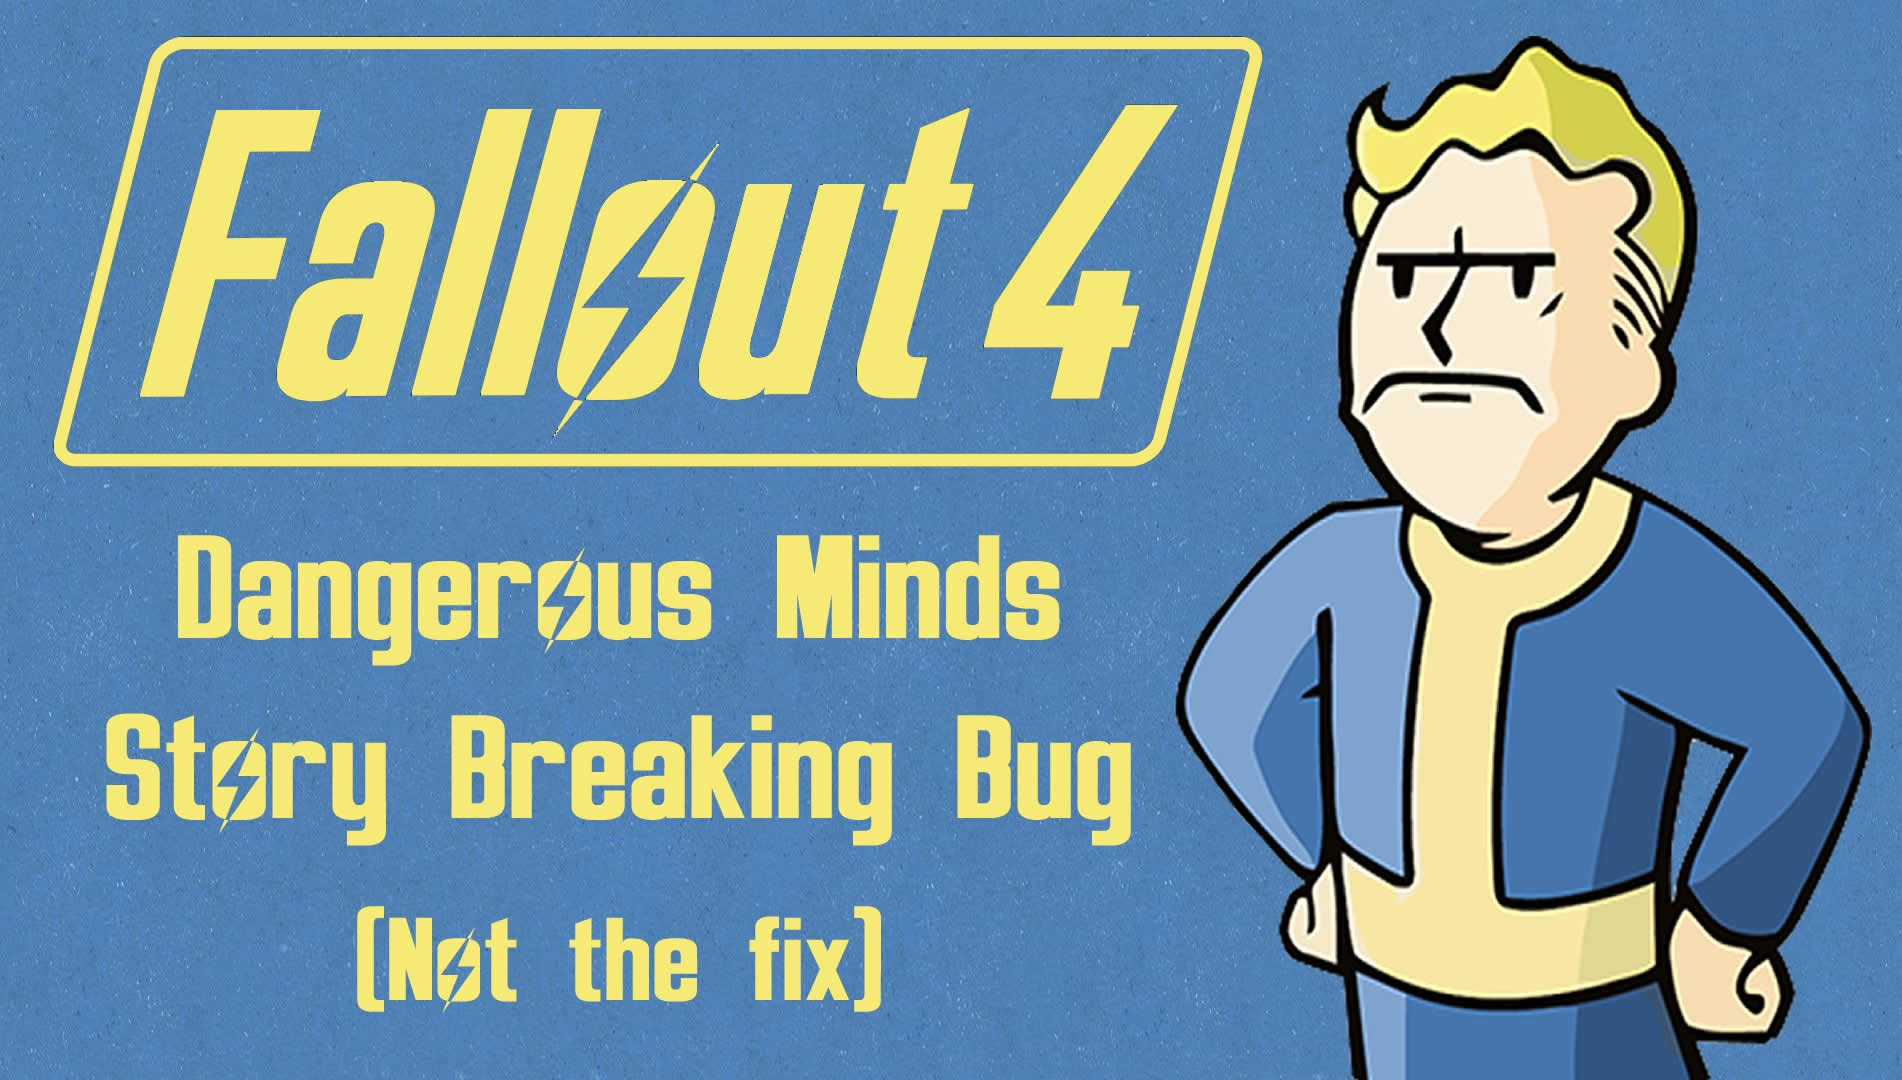 Glitch clipart trail Breaking Fallout YouTube Bug Story